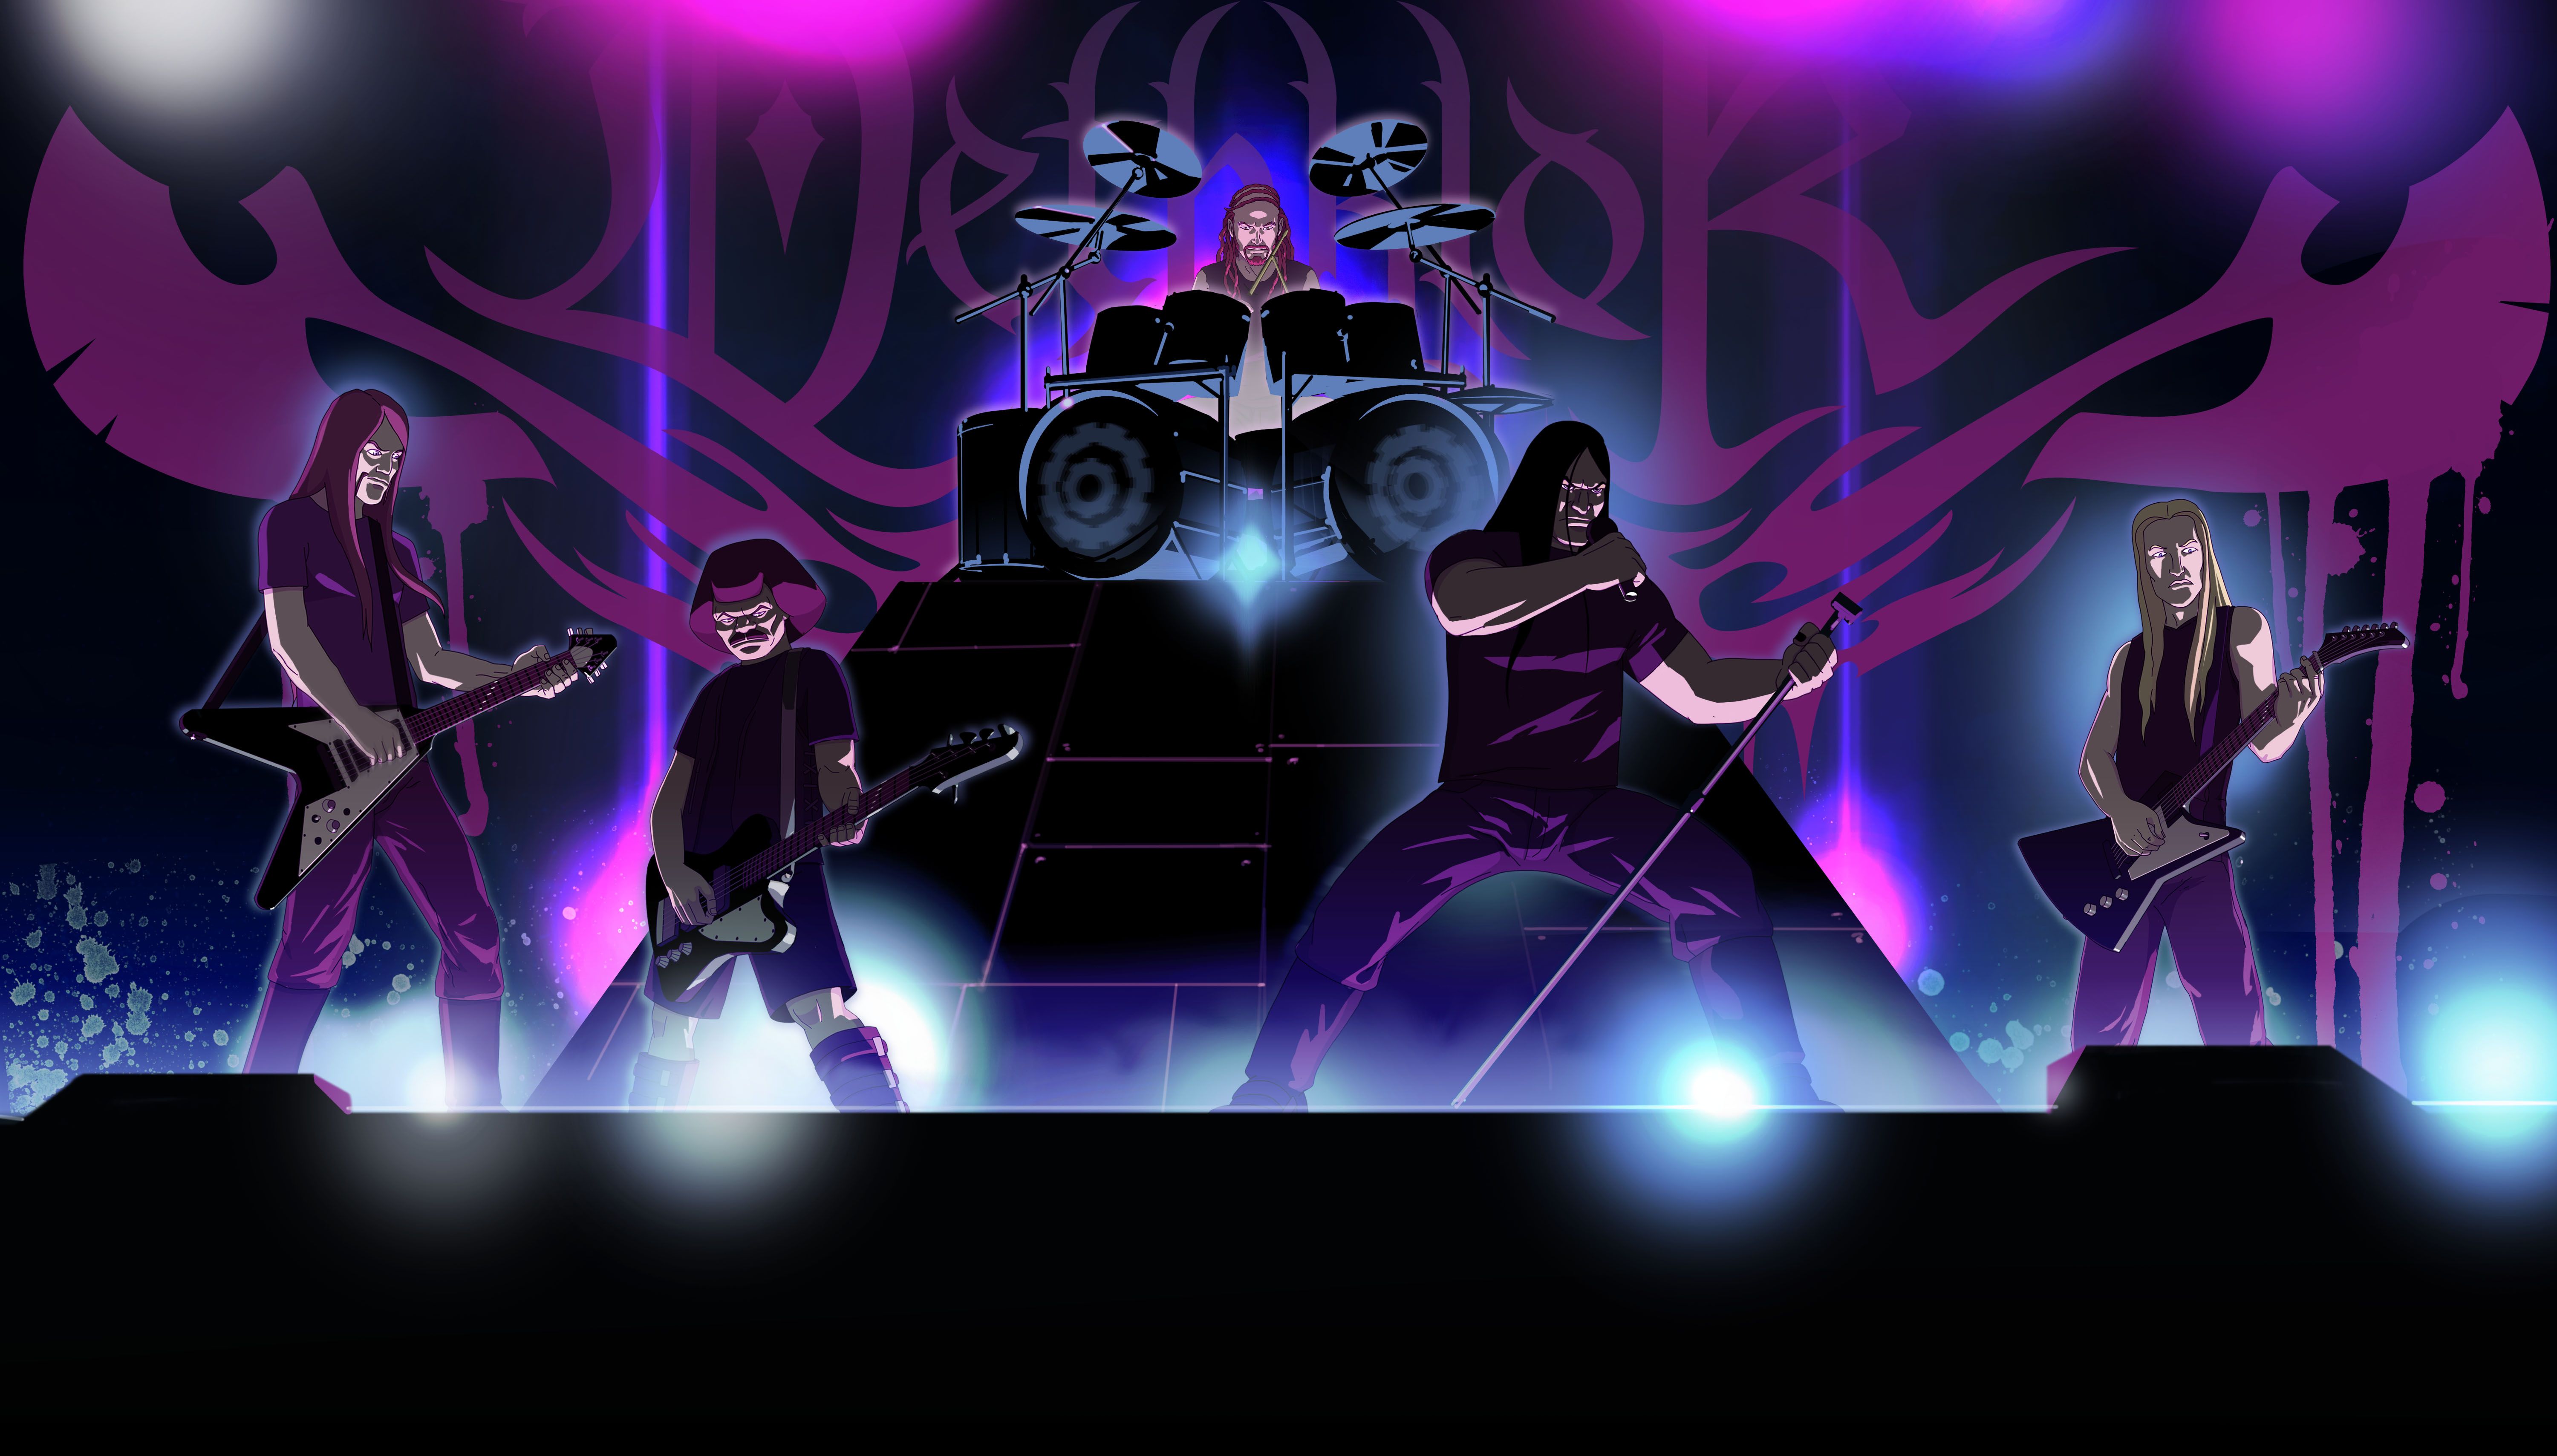 Dethklok to Play First Show in 5 Years at Adult Swim Festival 2019